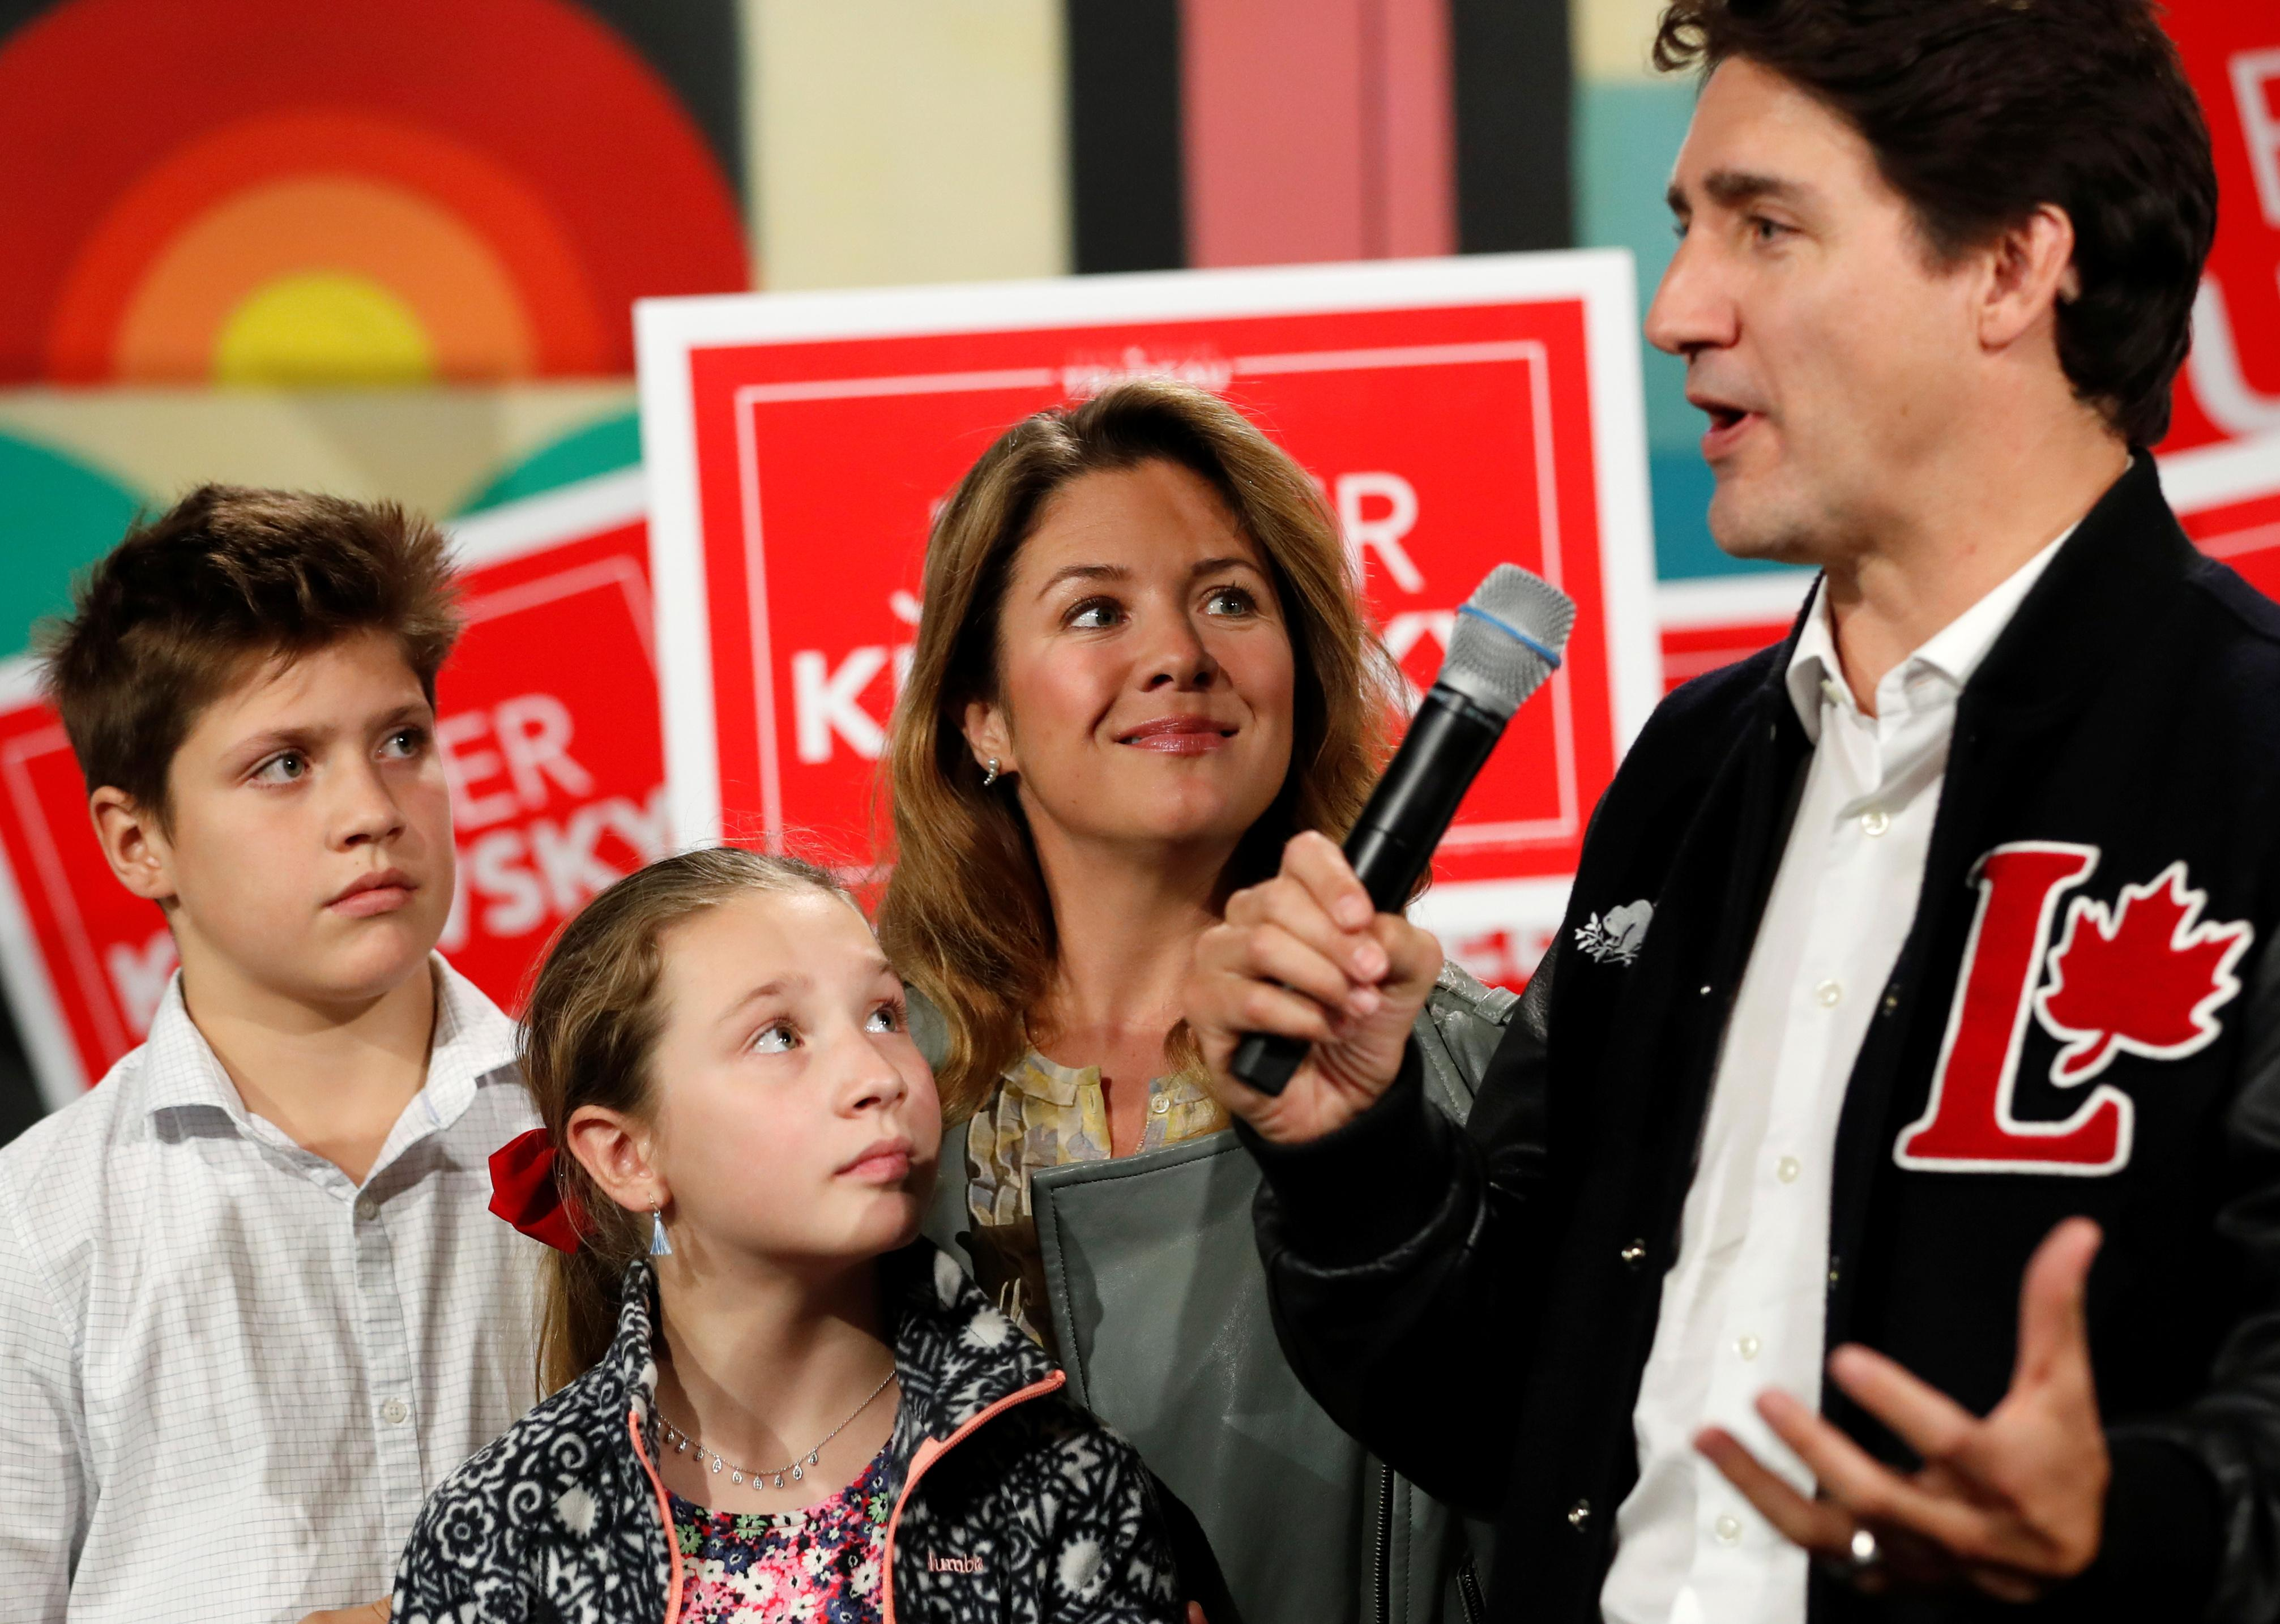 Canada's Trudeau, in election fight, says he needs voter support to...